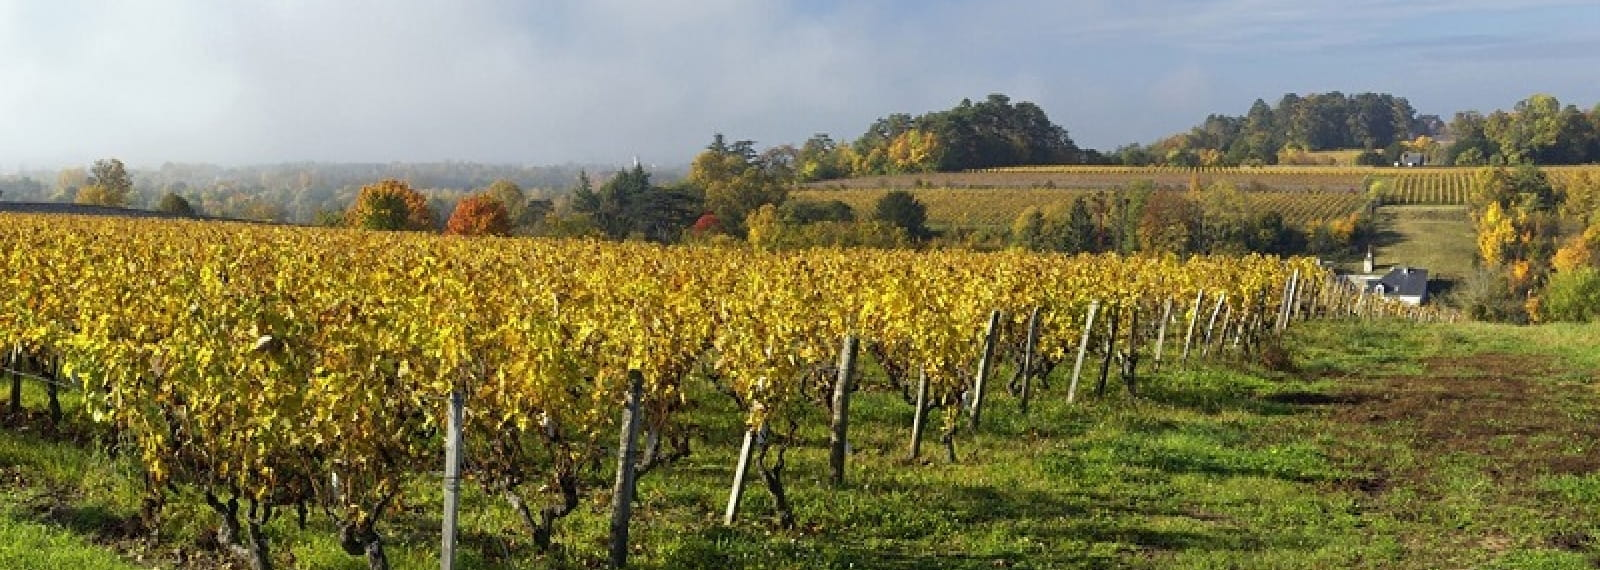 Chateau Gaudrelle, Vouvray wines - Rochecorbon, France.